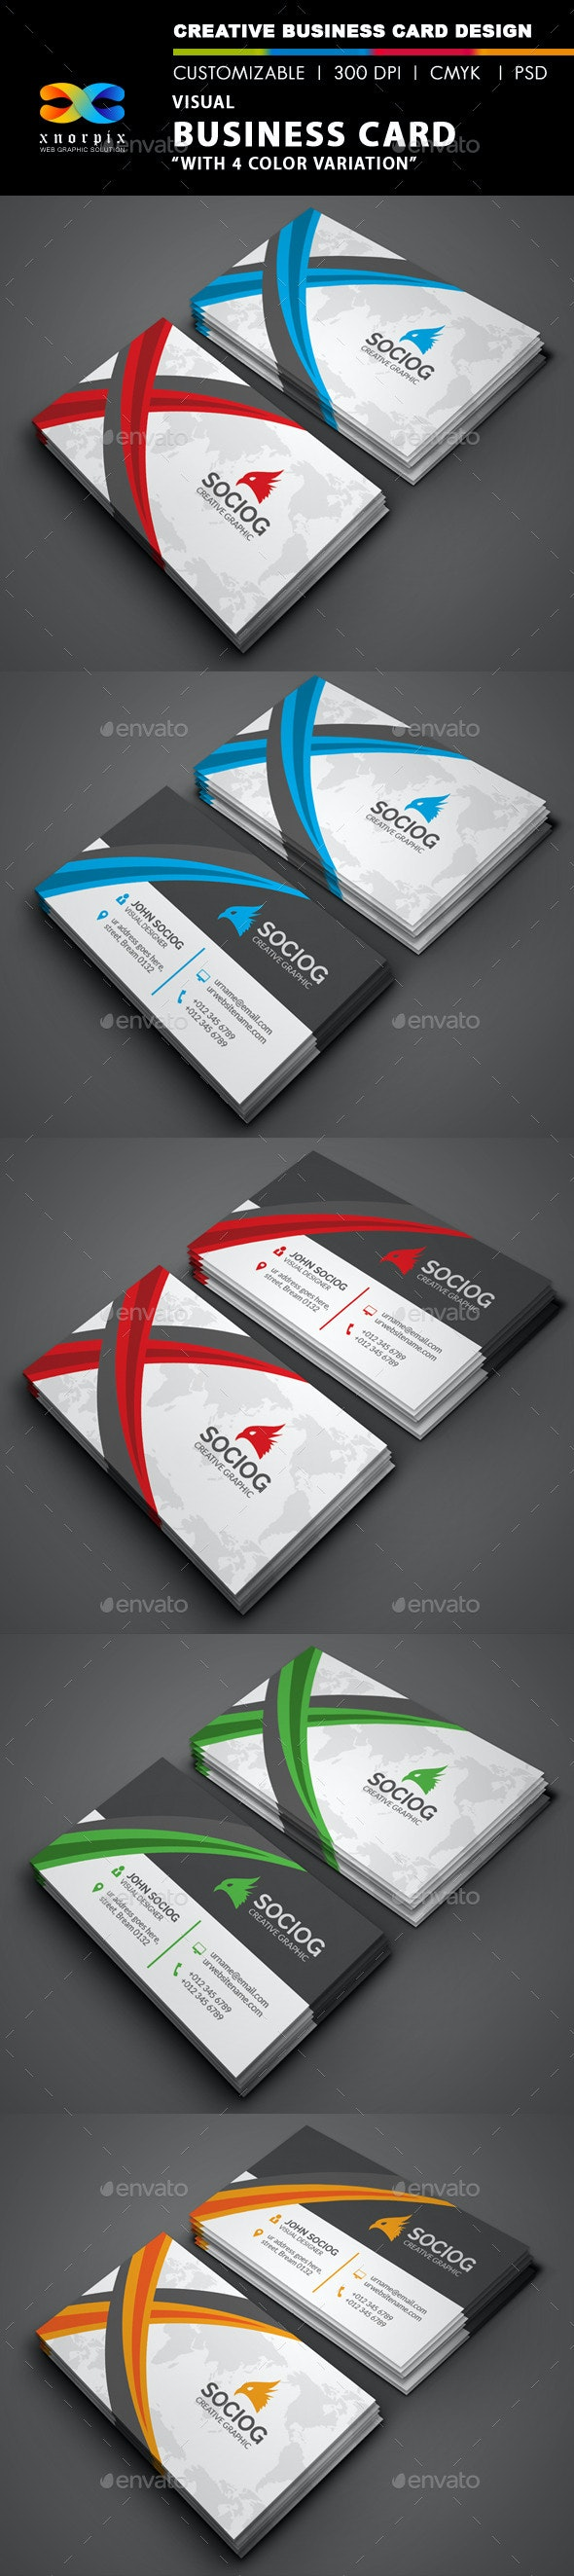 Visual Business Card - Corporate Business Cards